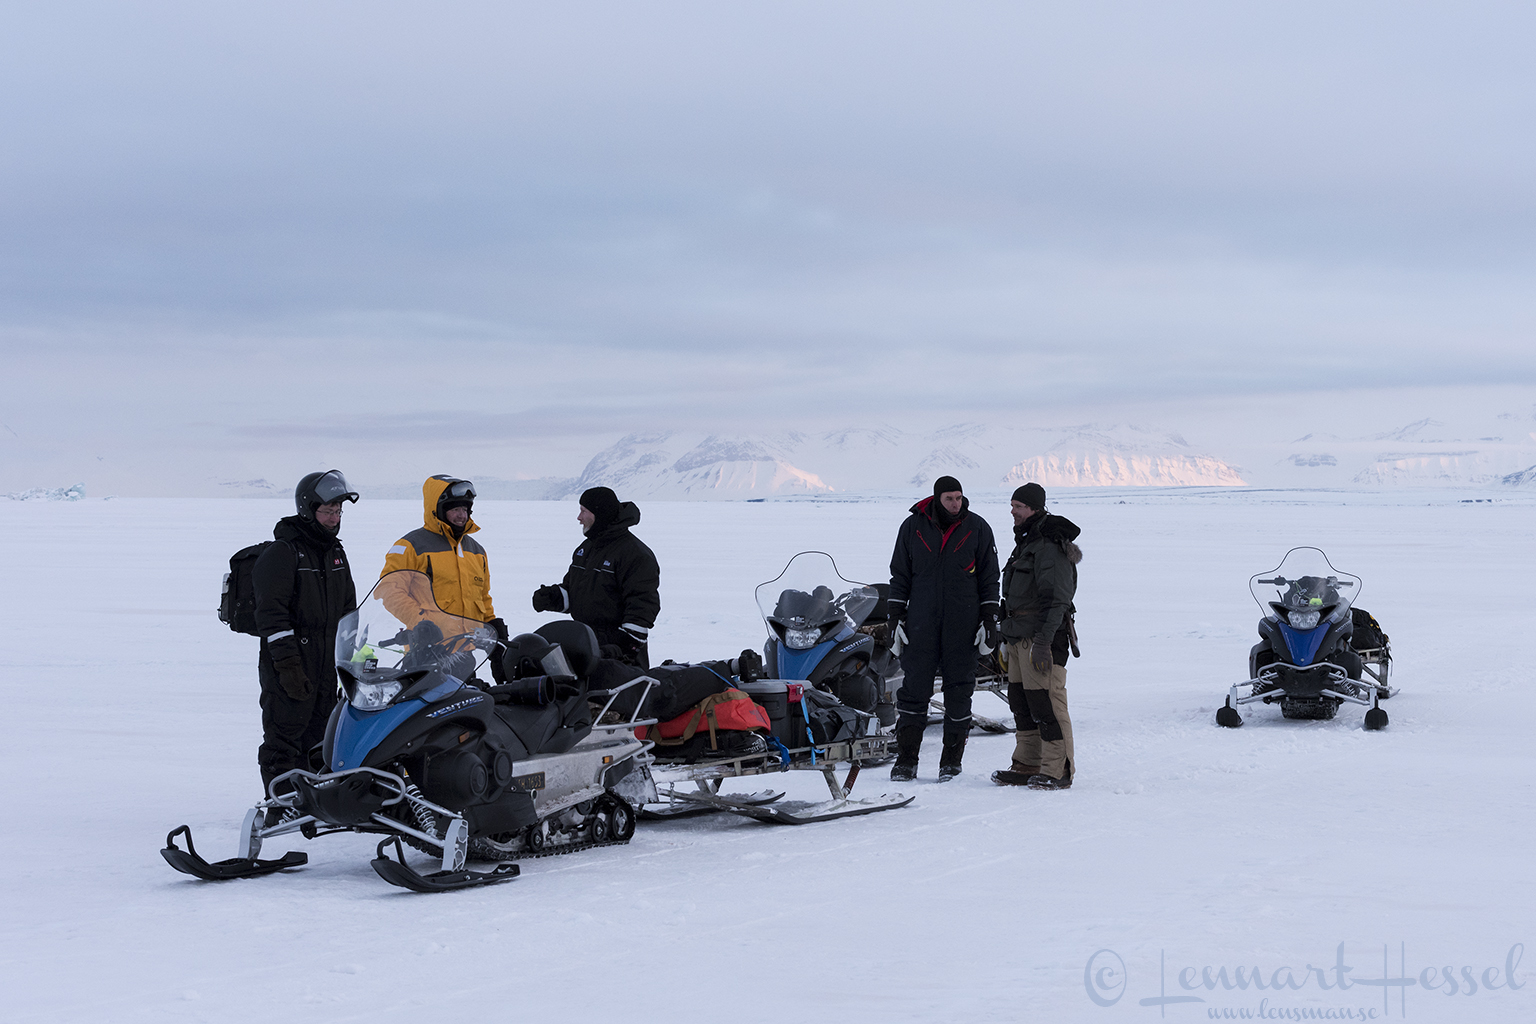 The group Arctic Svalbard